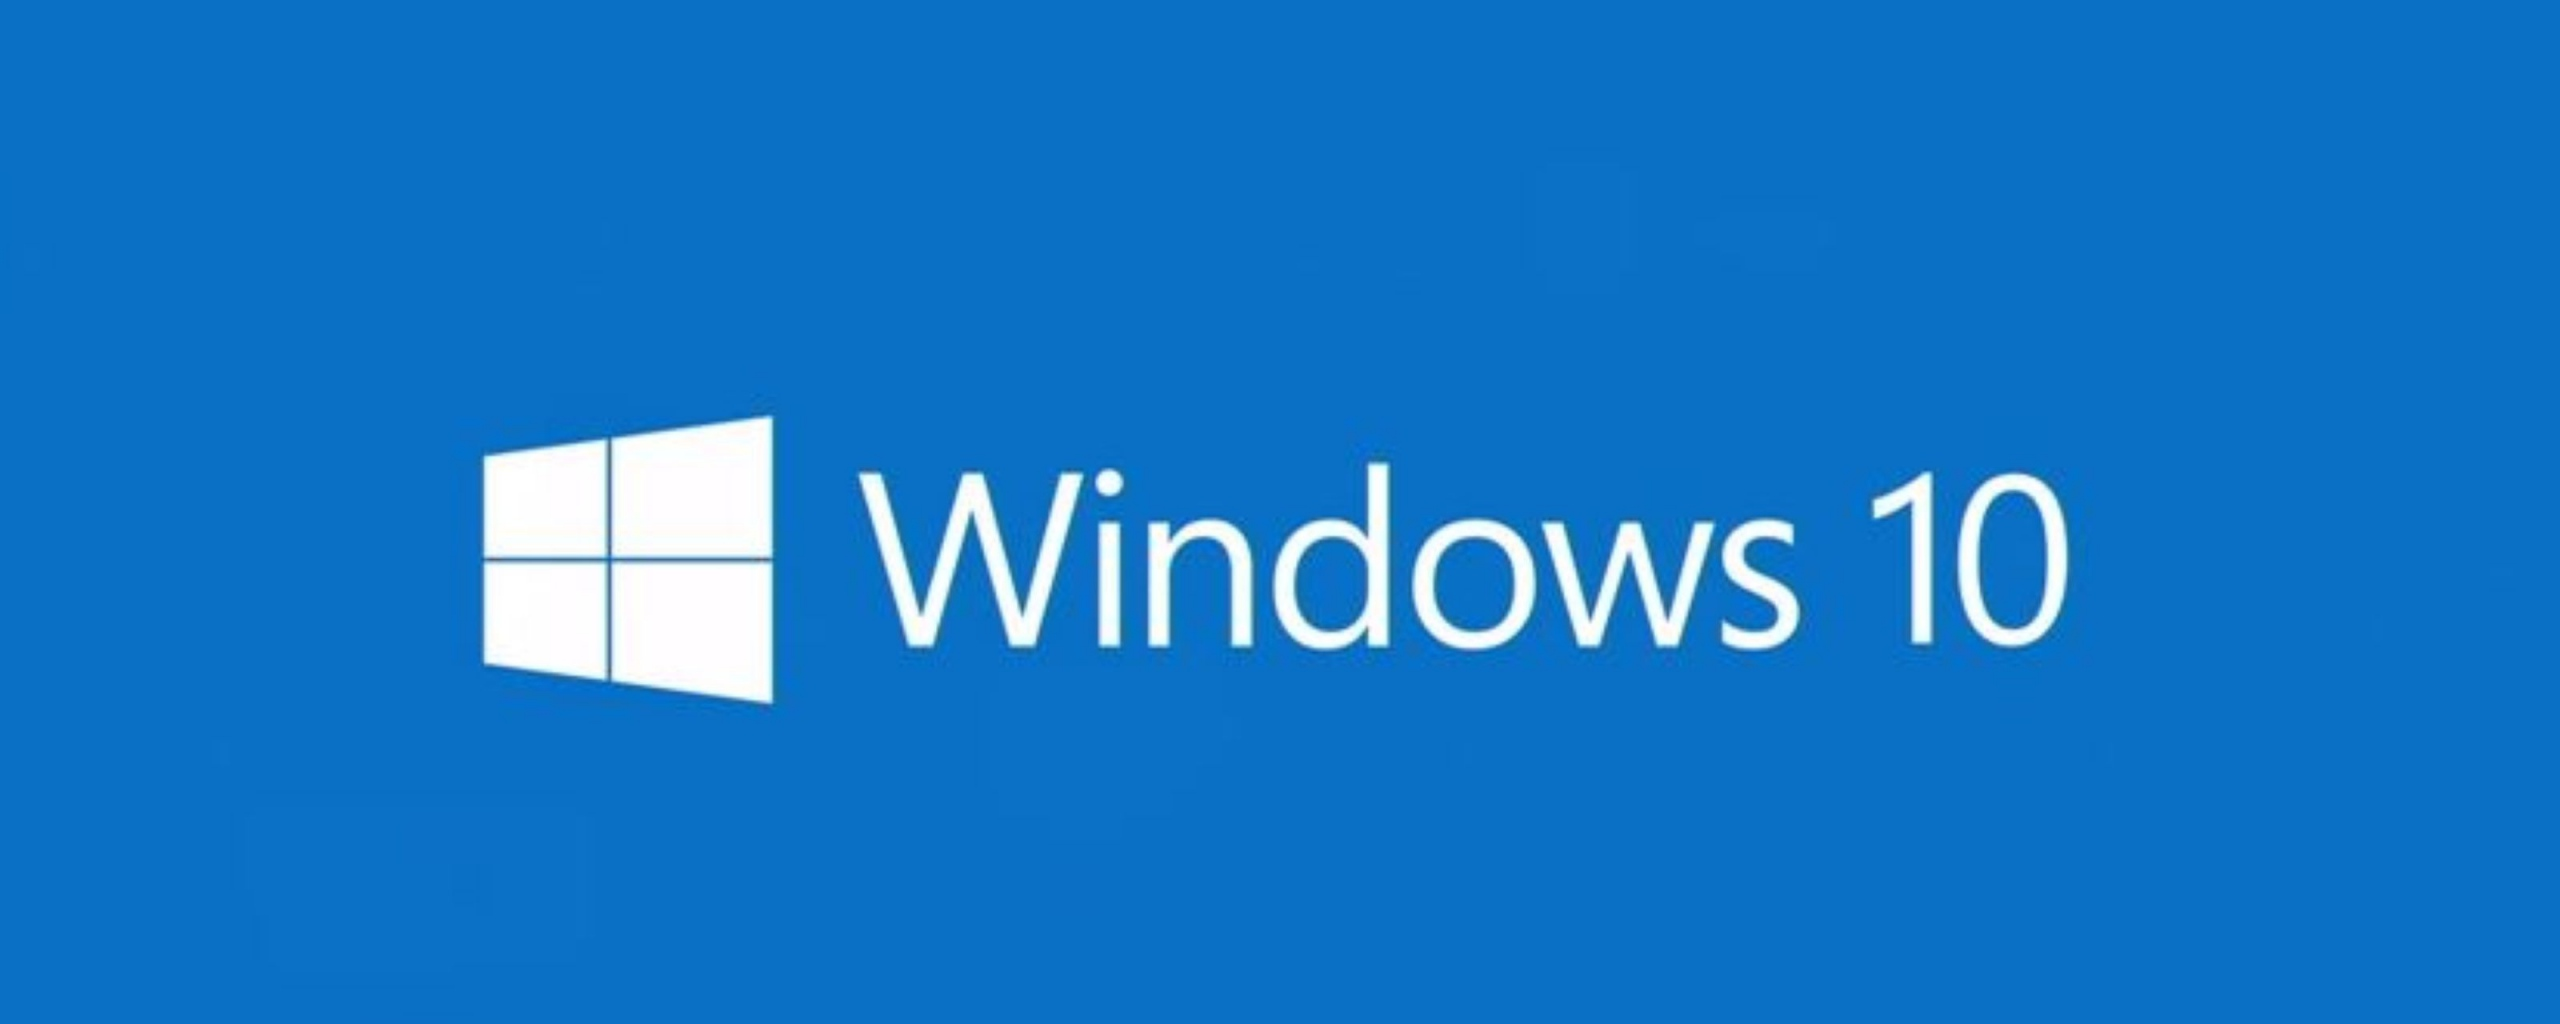 how to connect multiple monitors windows 10